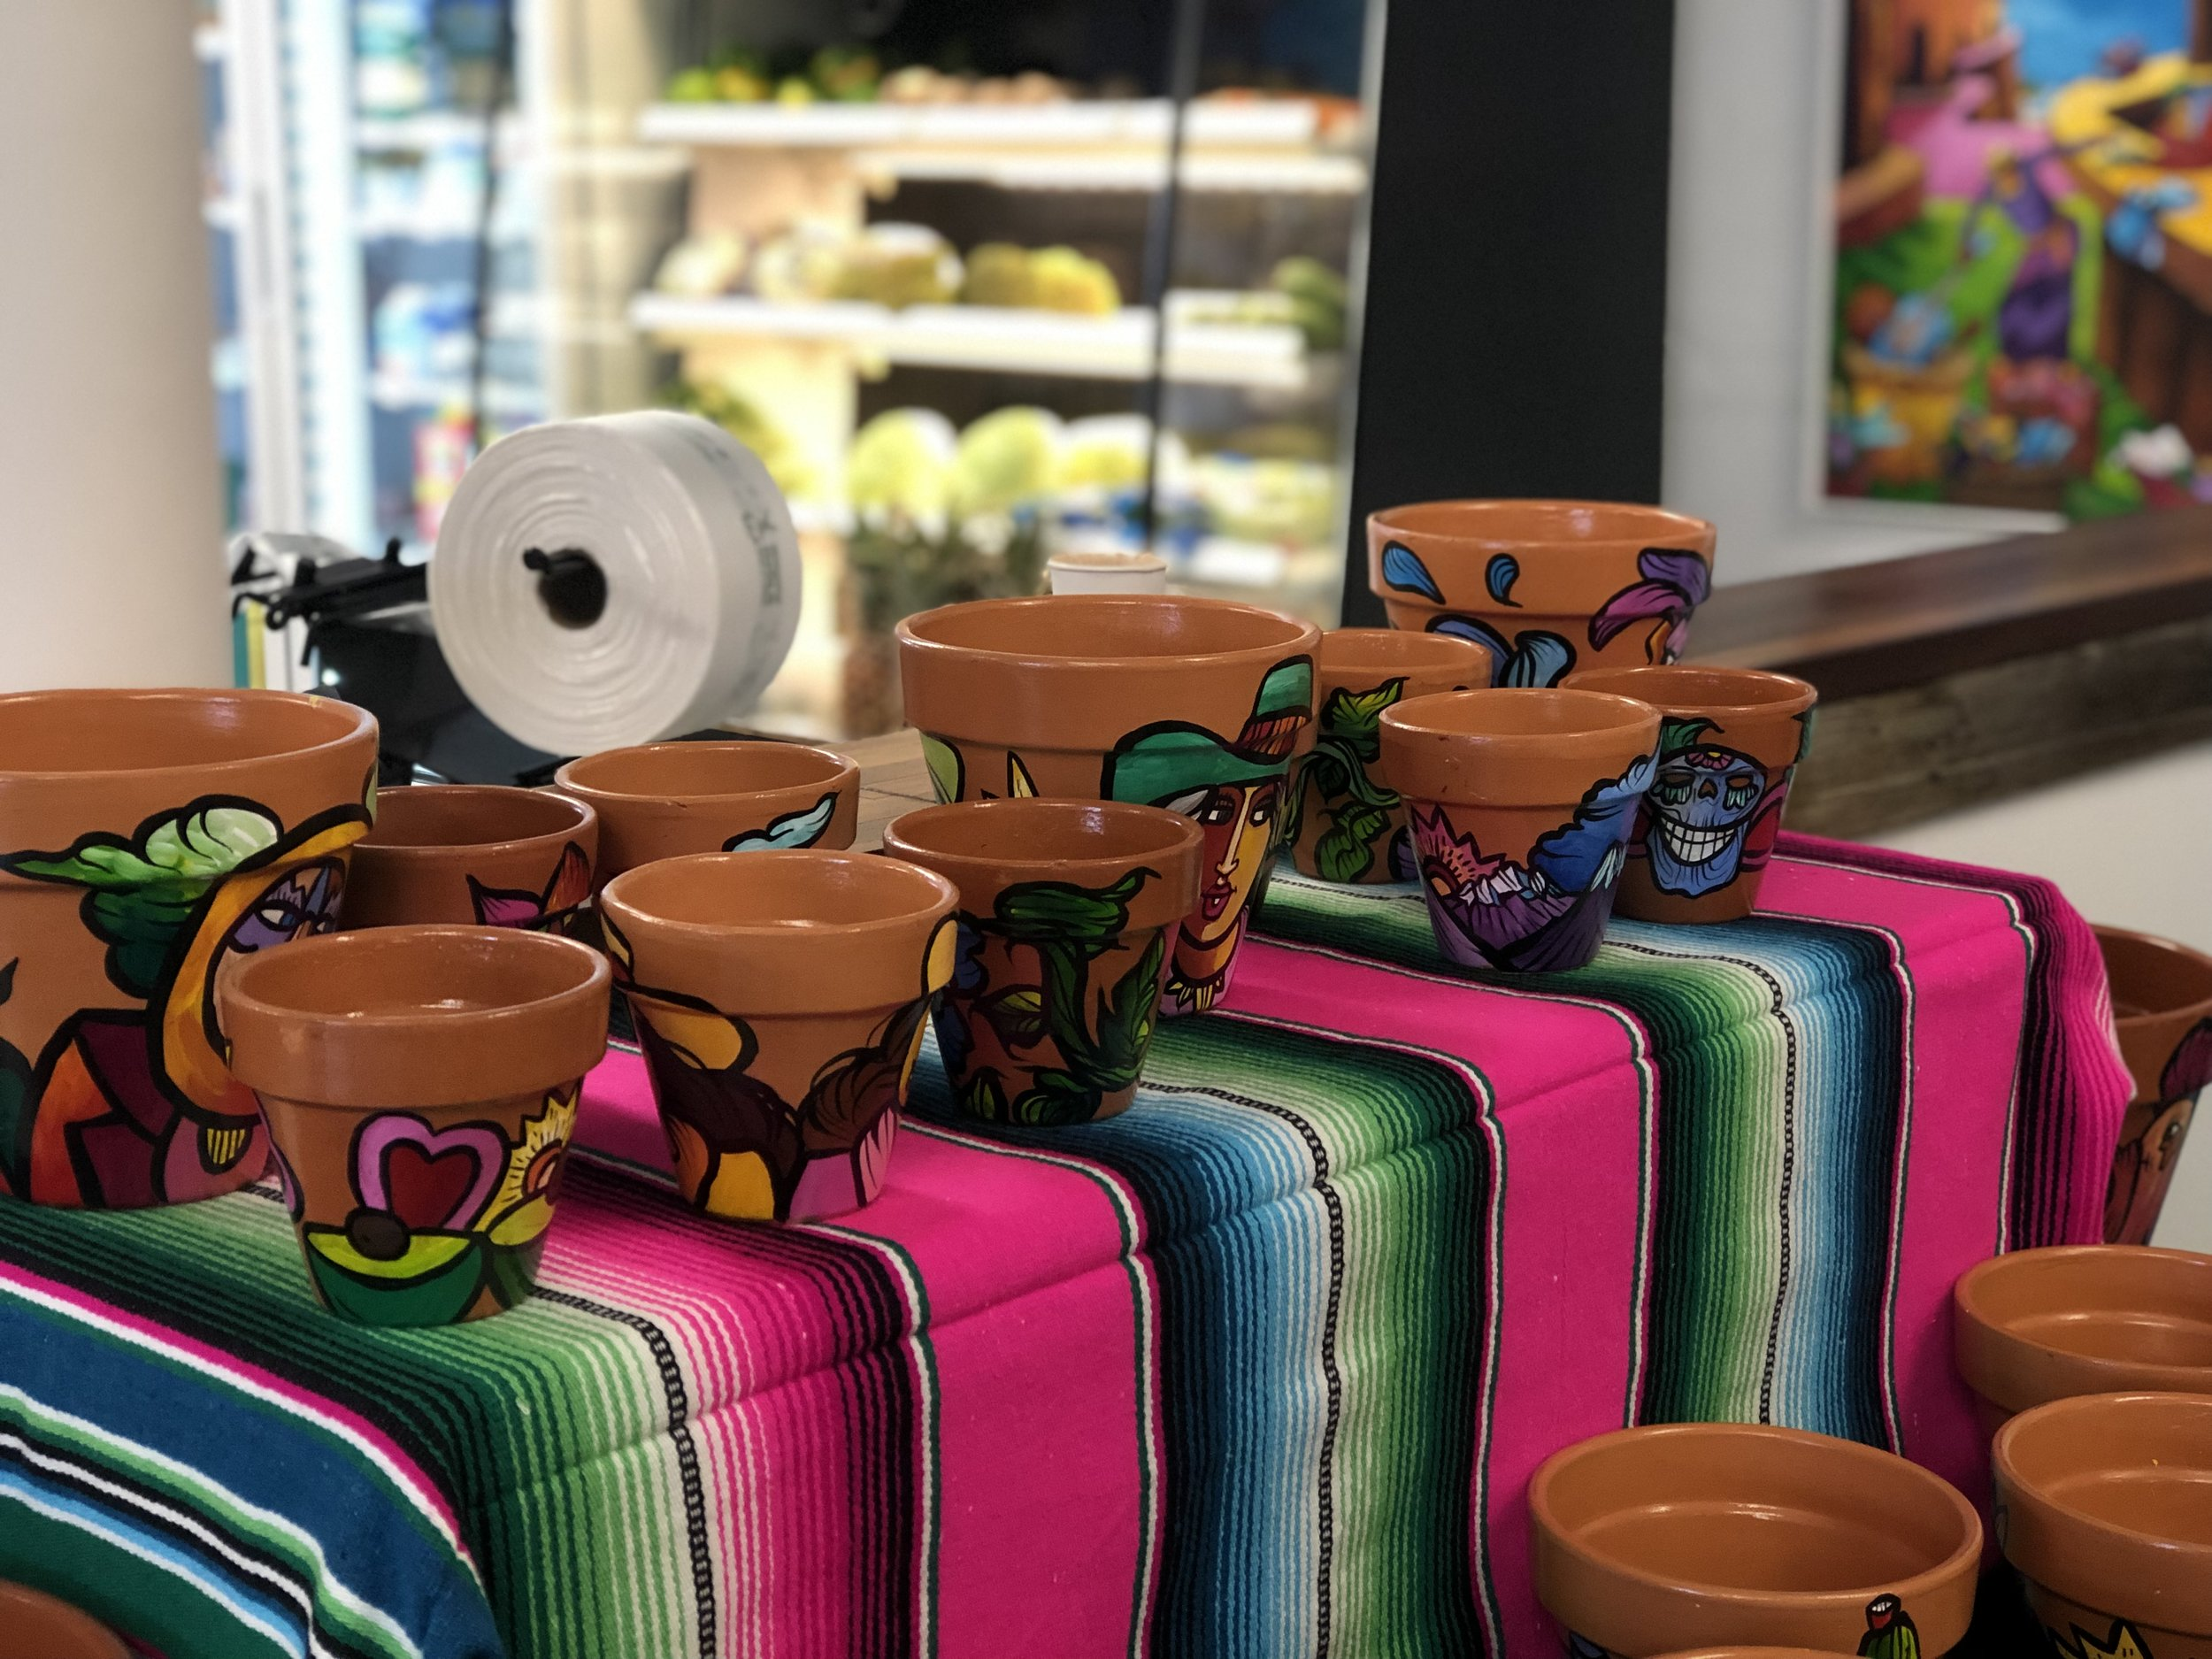 Luna's signature hand painted pots